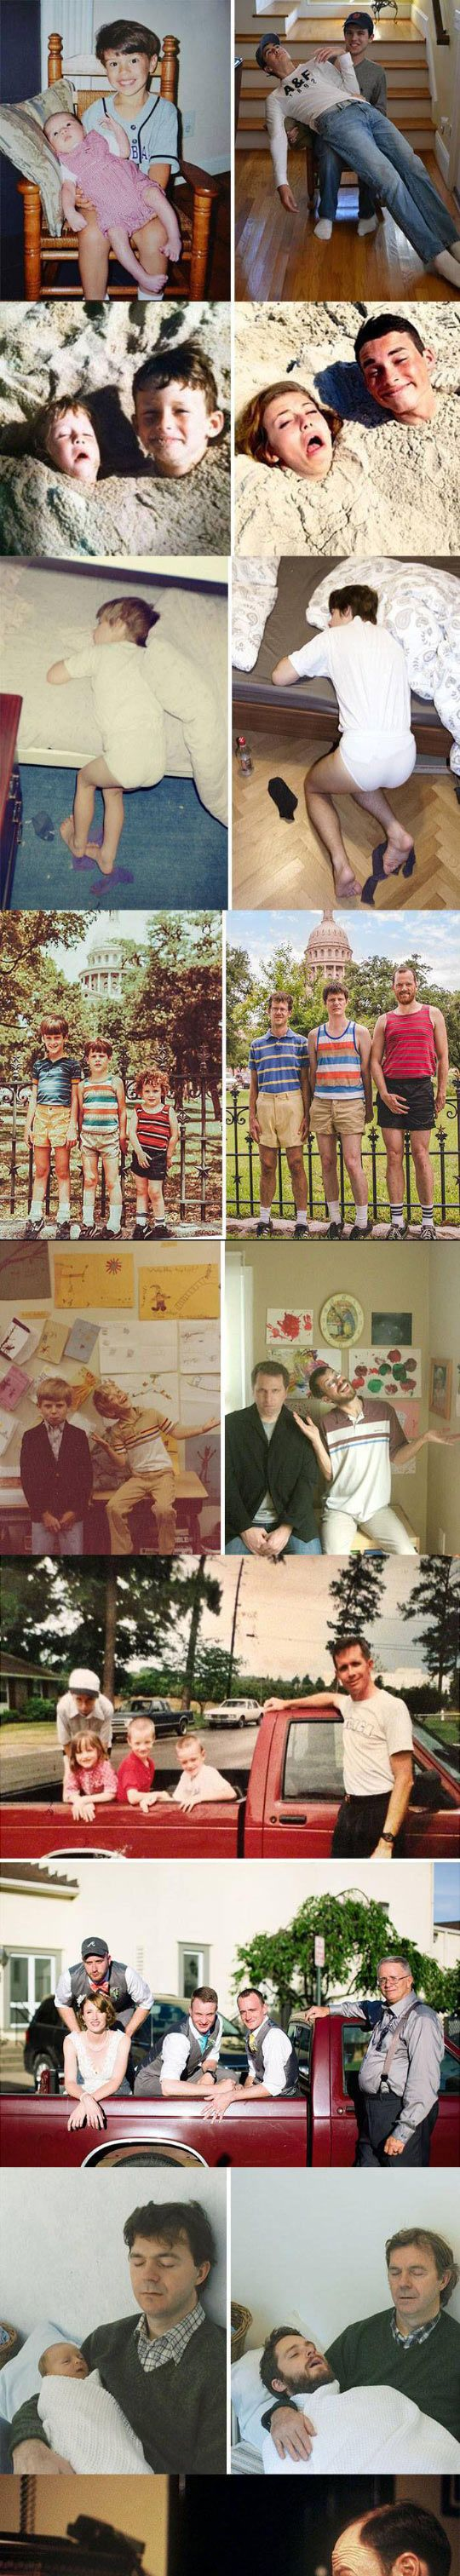 Before And After, Creative Recreations Of Childhood Photos - Hilarious!!!